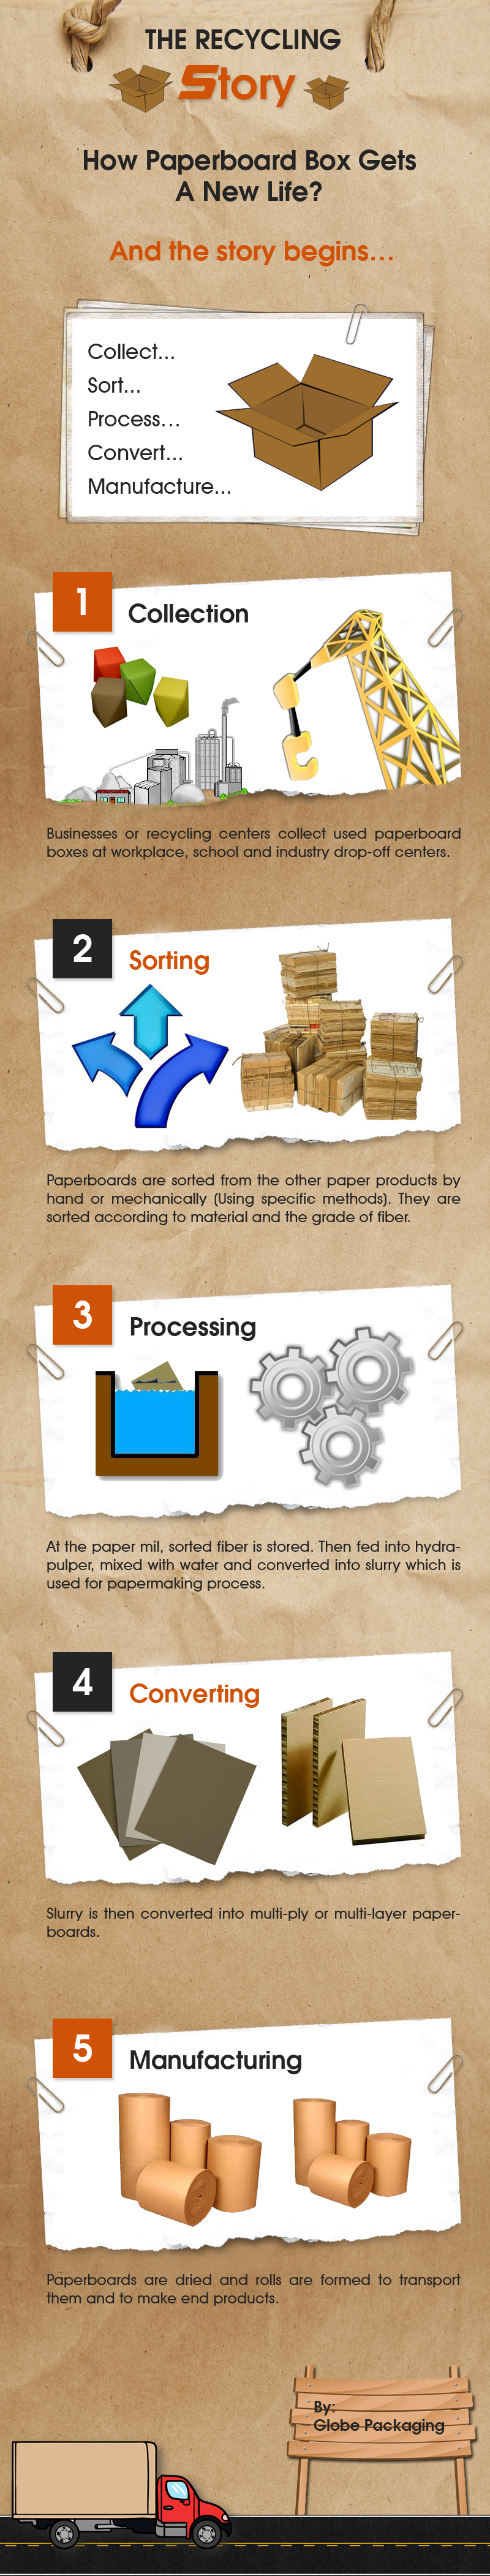 Infographic - recycling story